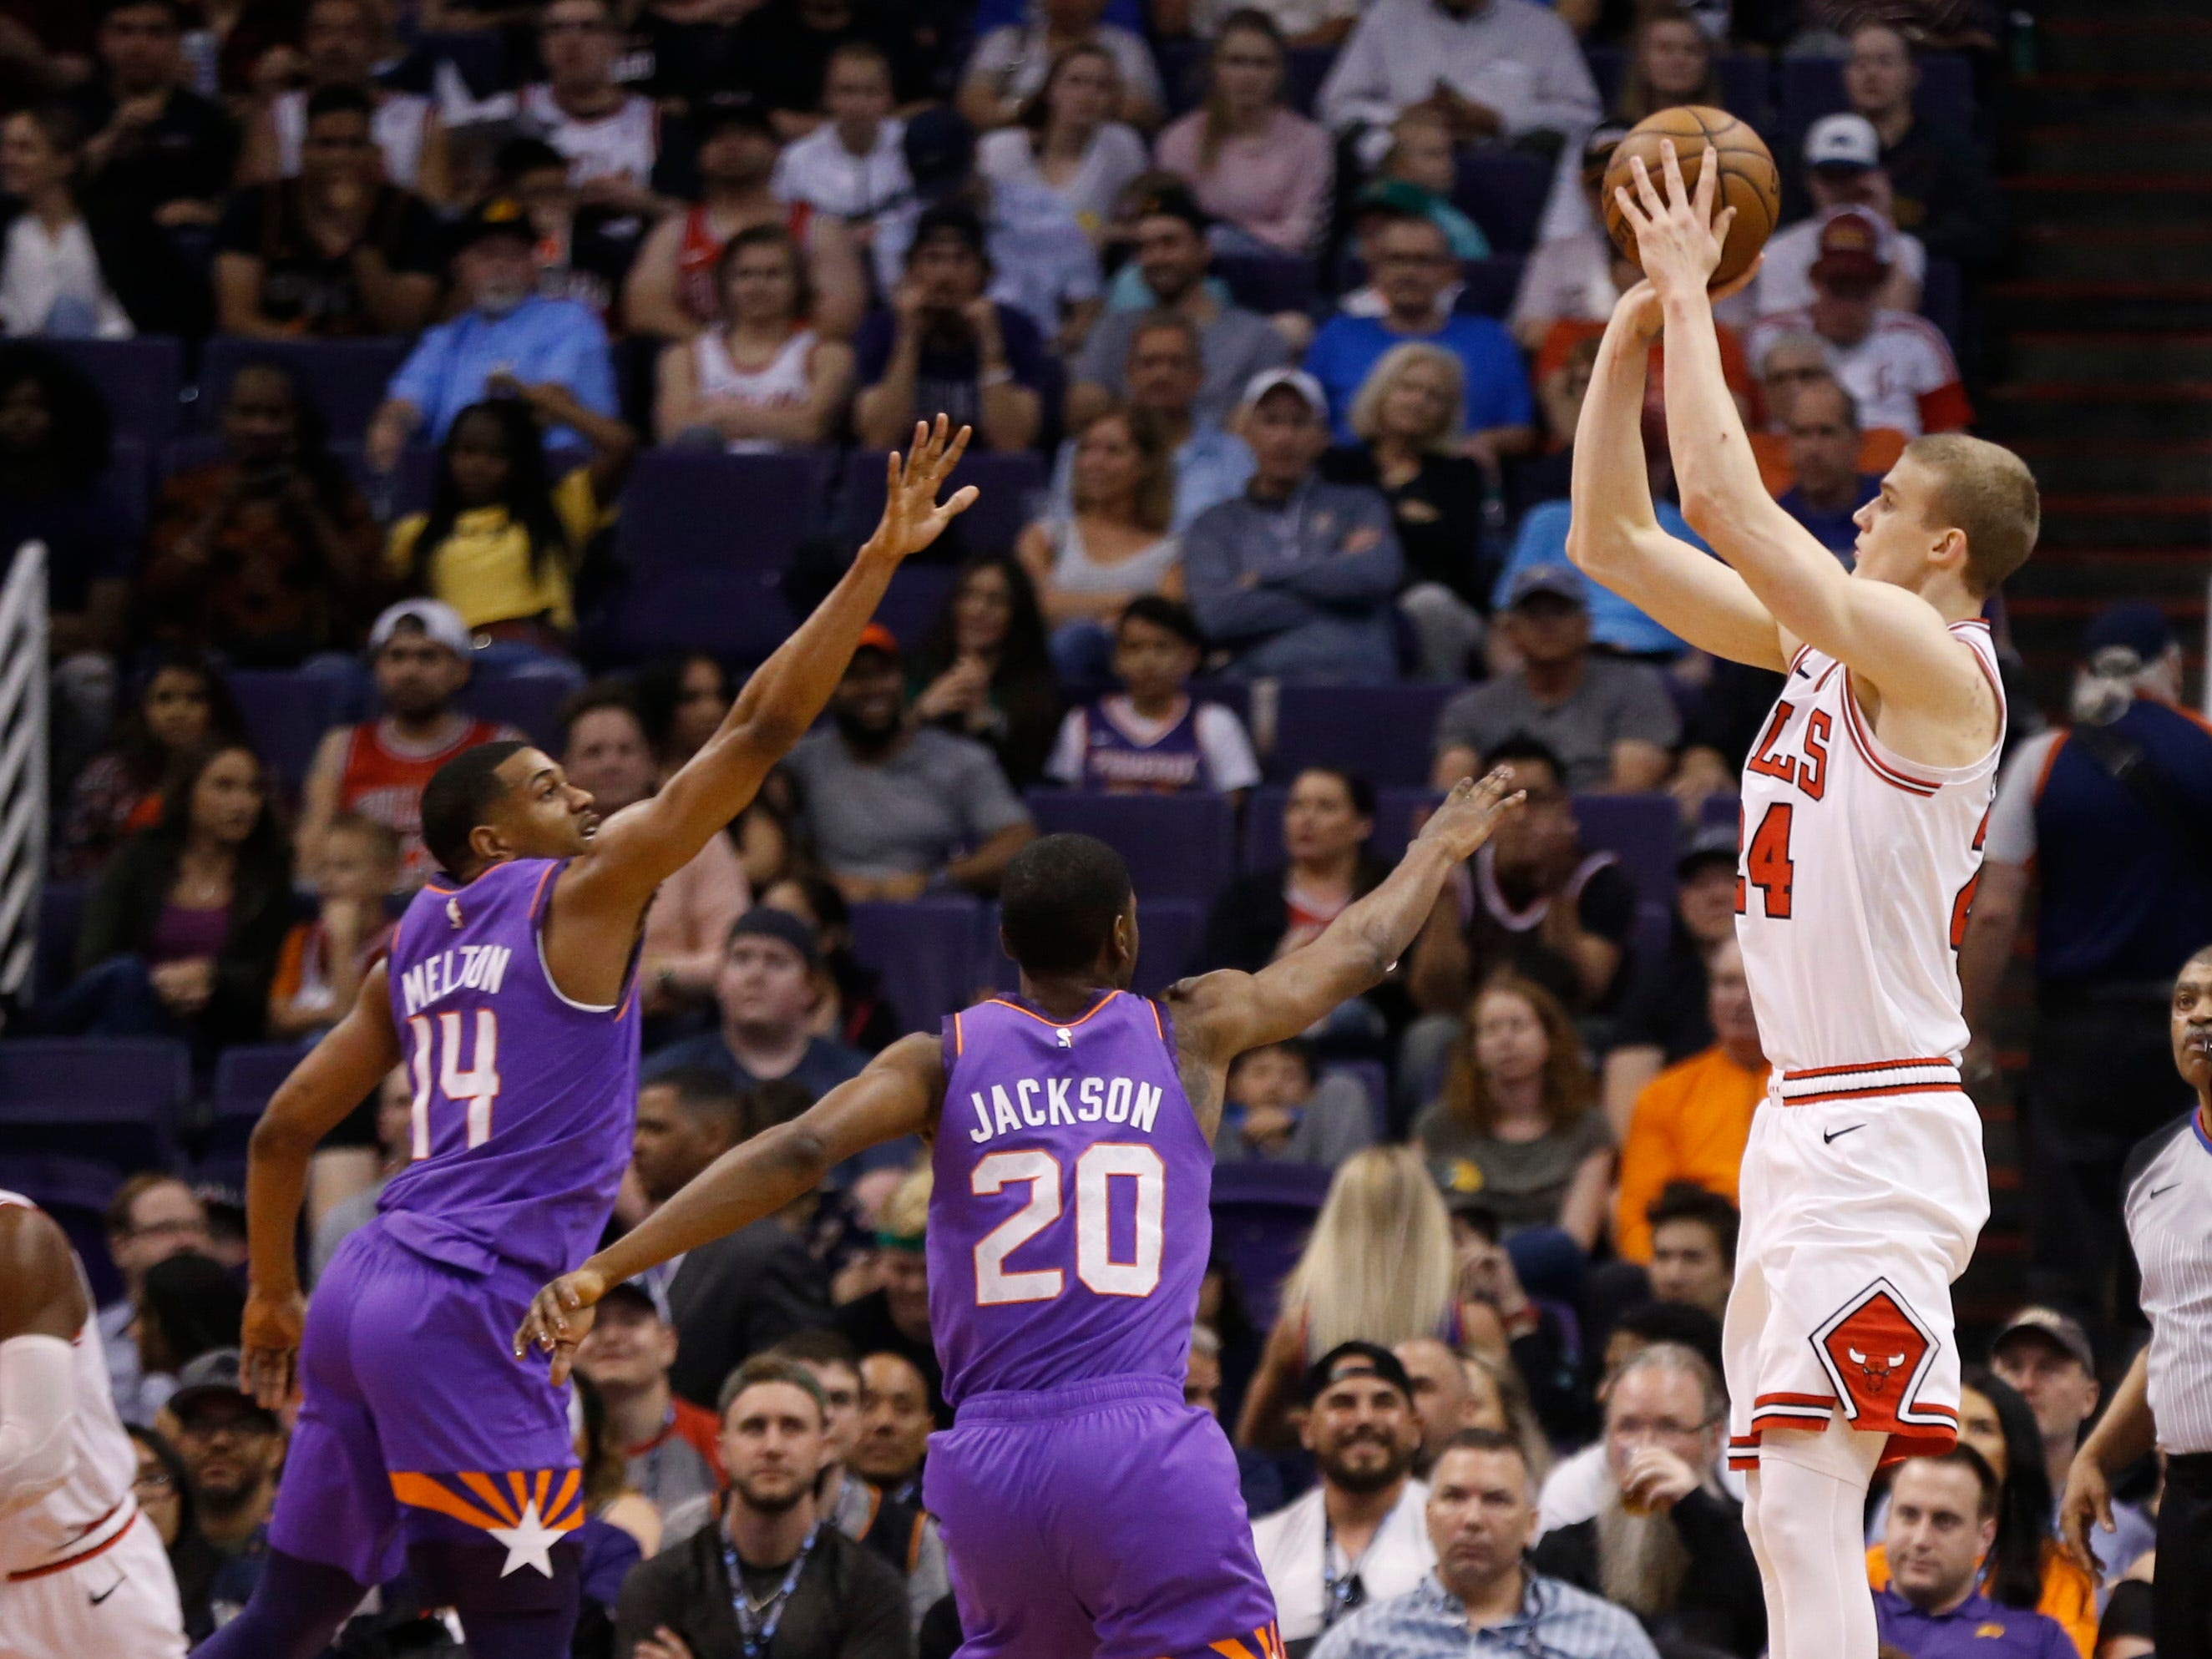 Bulls' Lauri Markanen (24) makes a shot against Suns' De'Anthony Melton (14) and Josh Jackson (20) during the second half at Talking Stick Resort Arena in Phoenix, Ariz. on March 18, 2019.